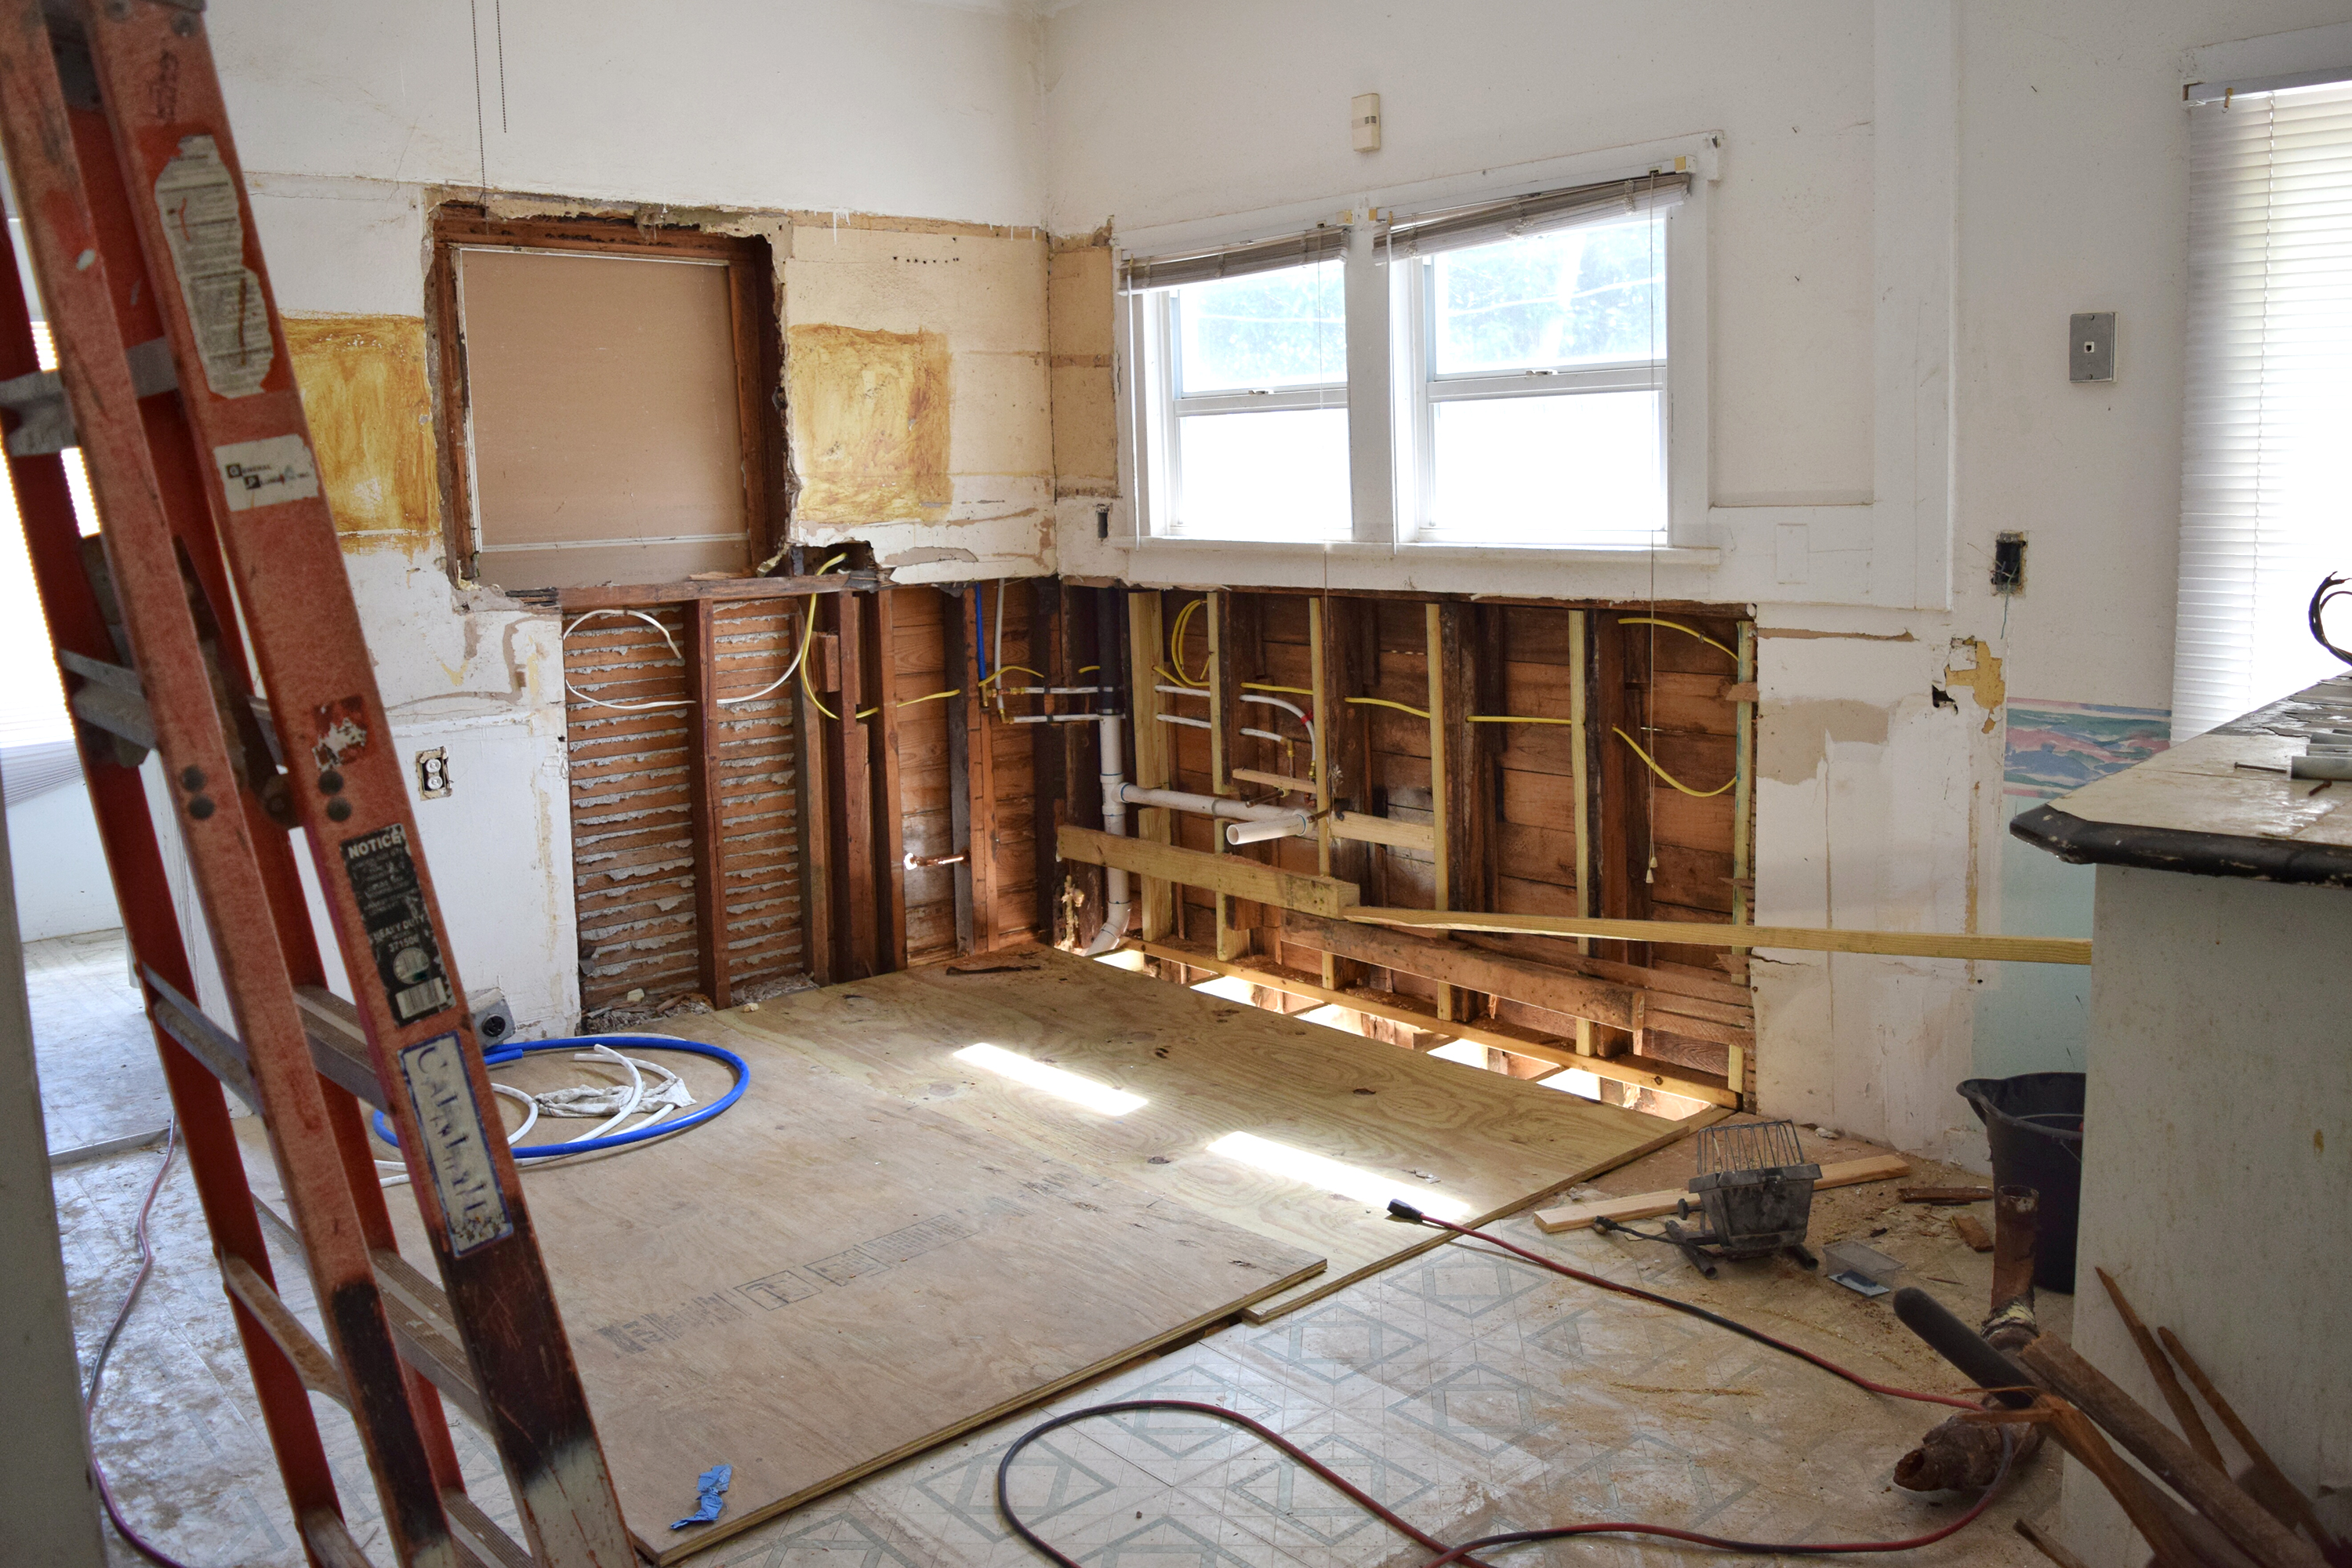 A behind the scenes look, mid-renovation.